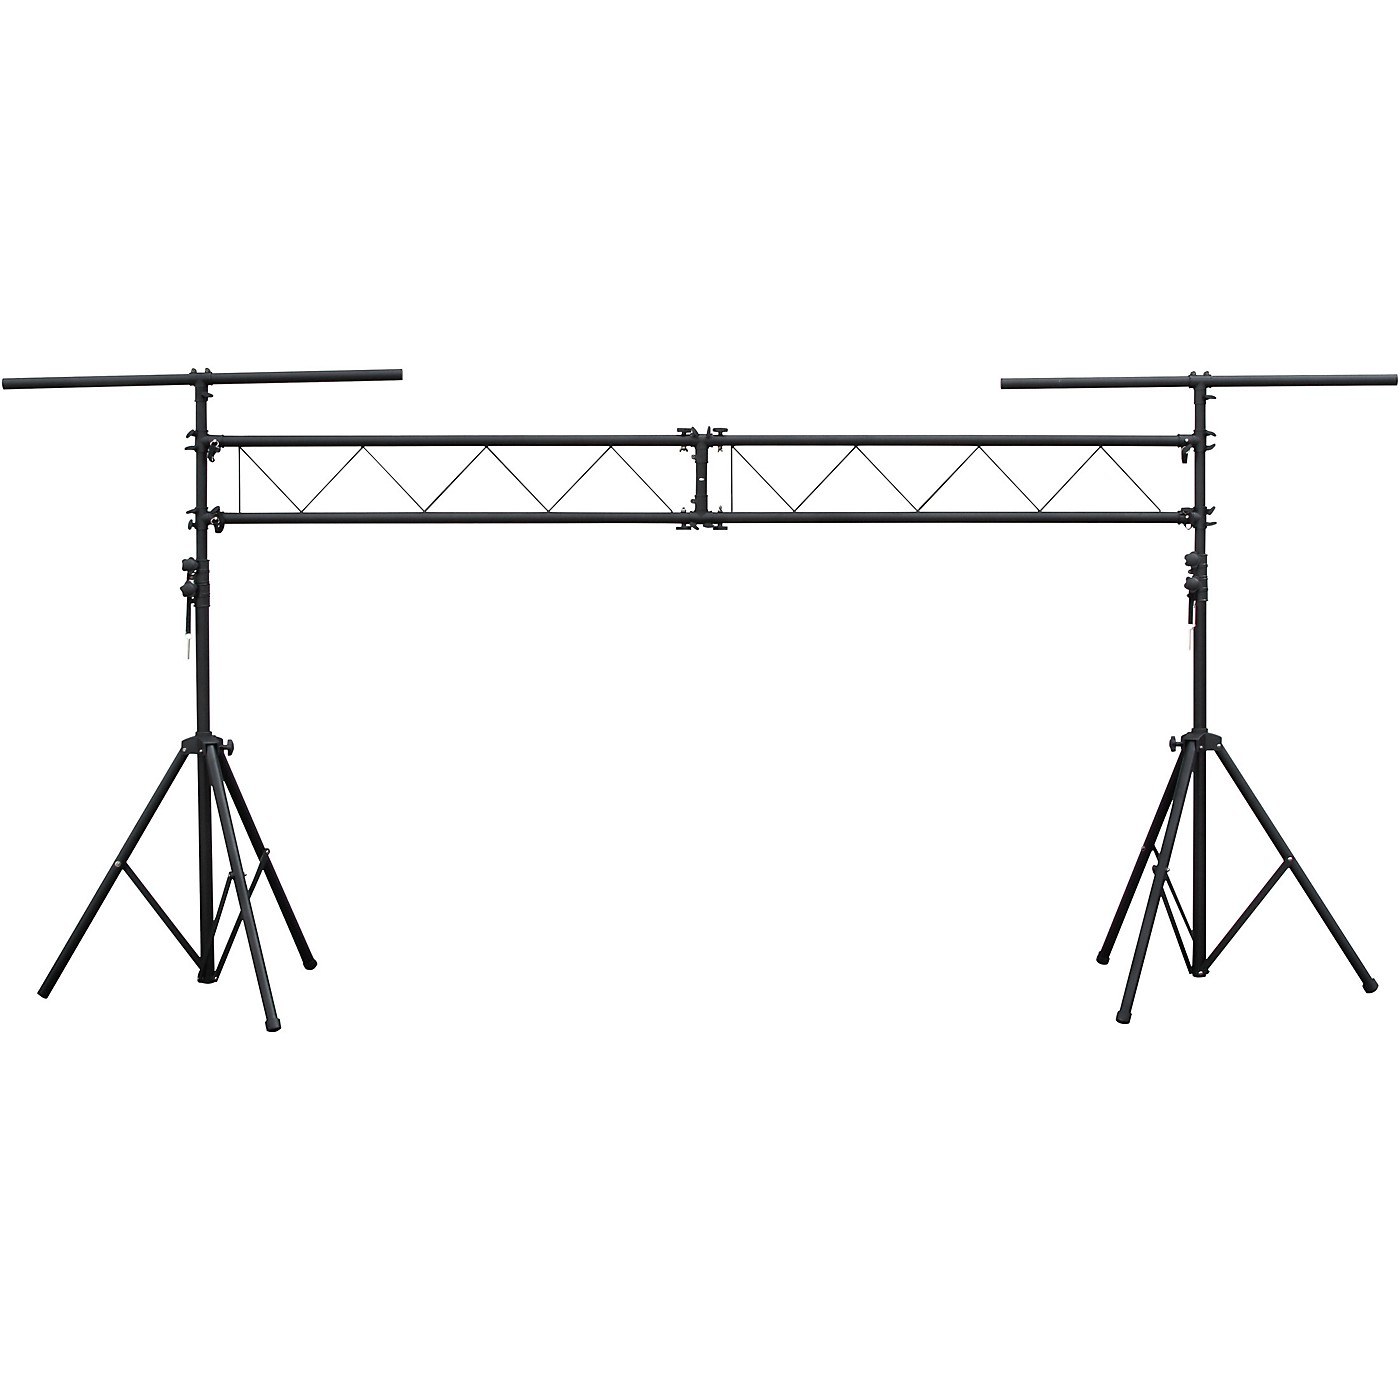 Eliminator Lighting E116 Dual Tripod Stand and 2x5 ft I Beam Truss System For Mobile Entertainers thumbnail